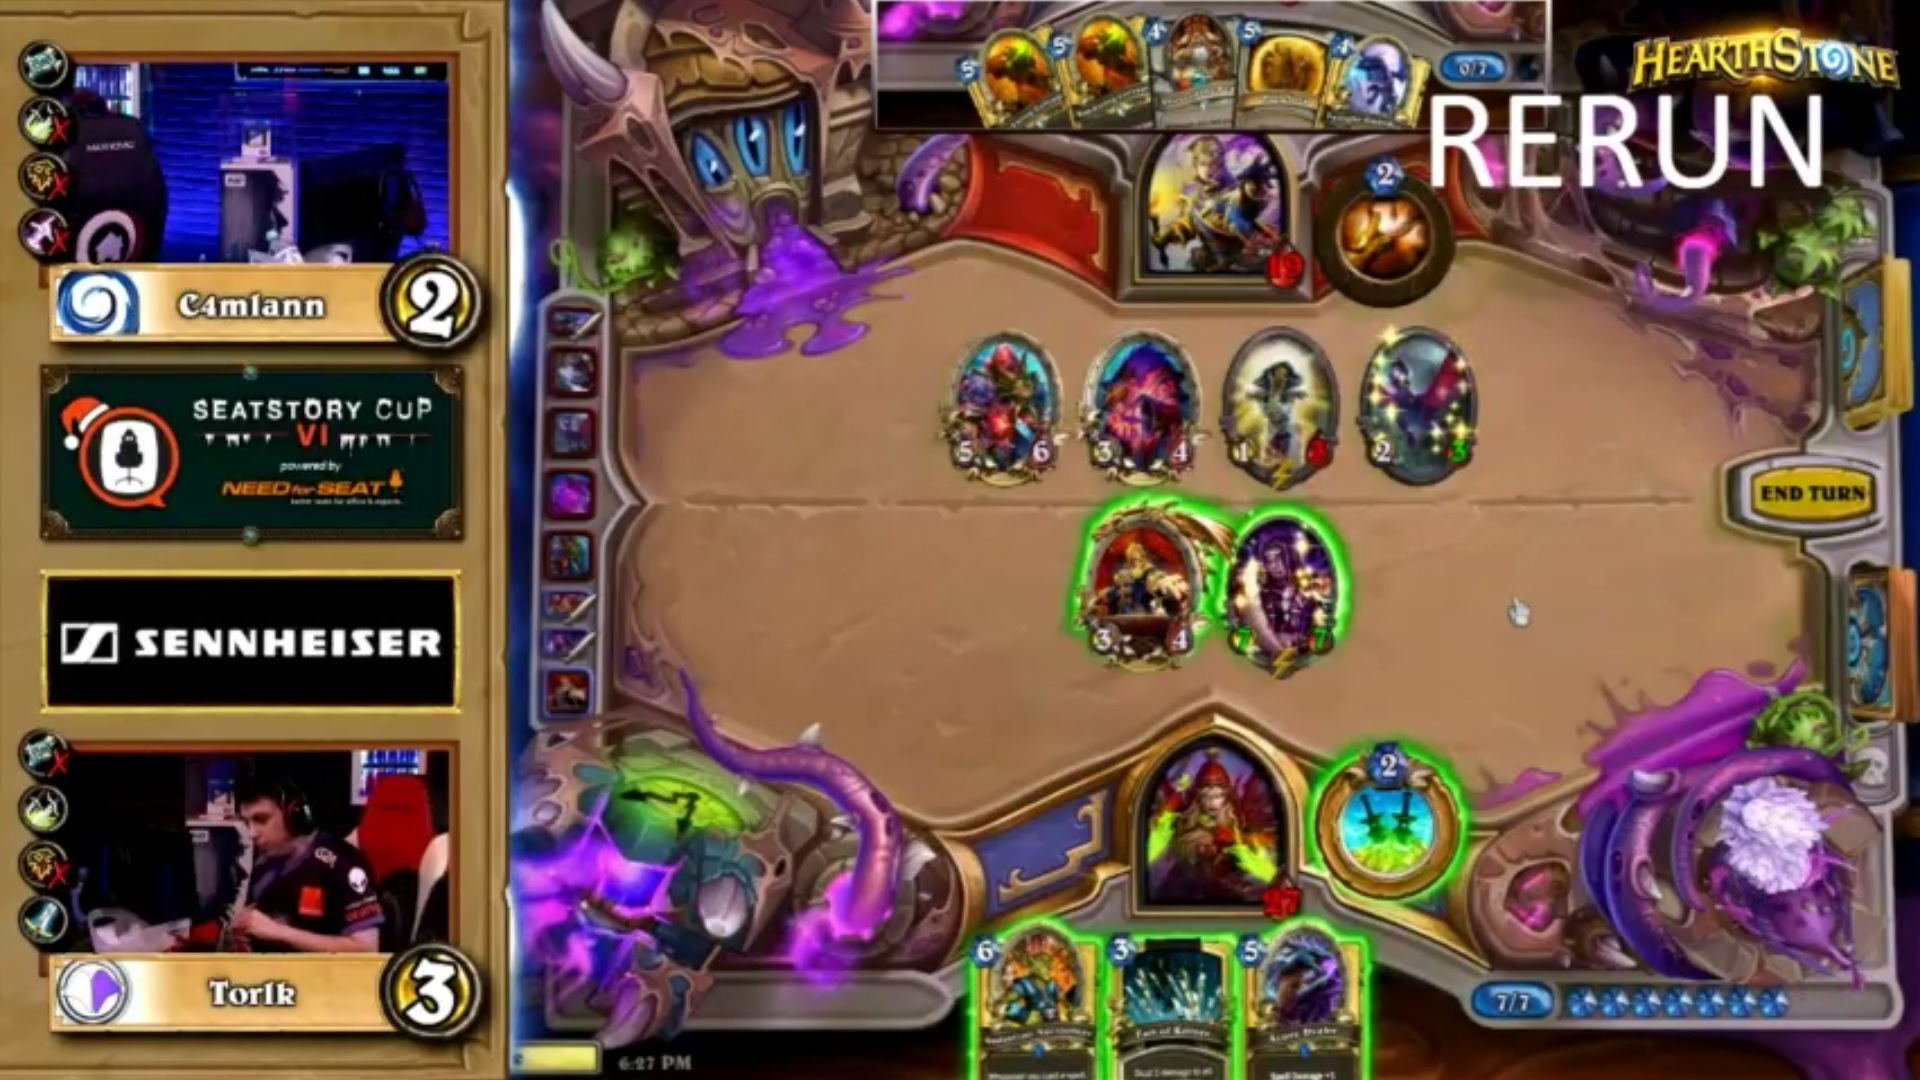 Example of a Hearthstone misplay at Seatstory Cup VI. This is a screenshot from a game between C4mlann and Torik.